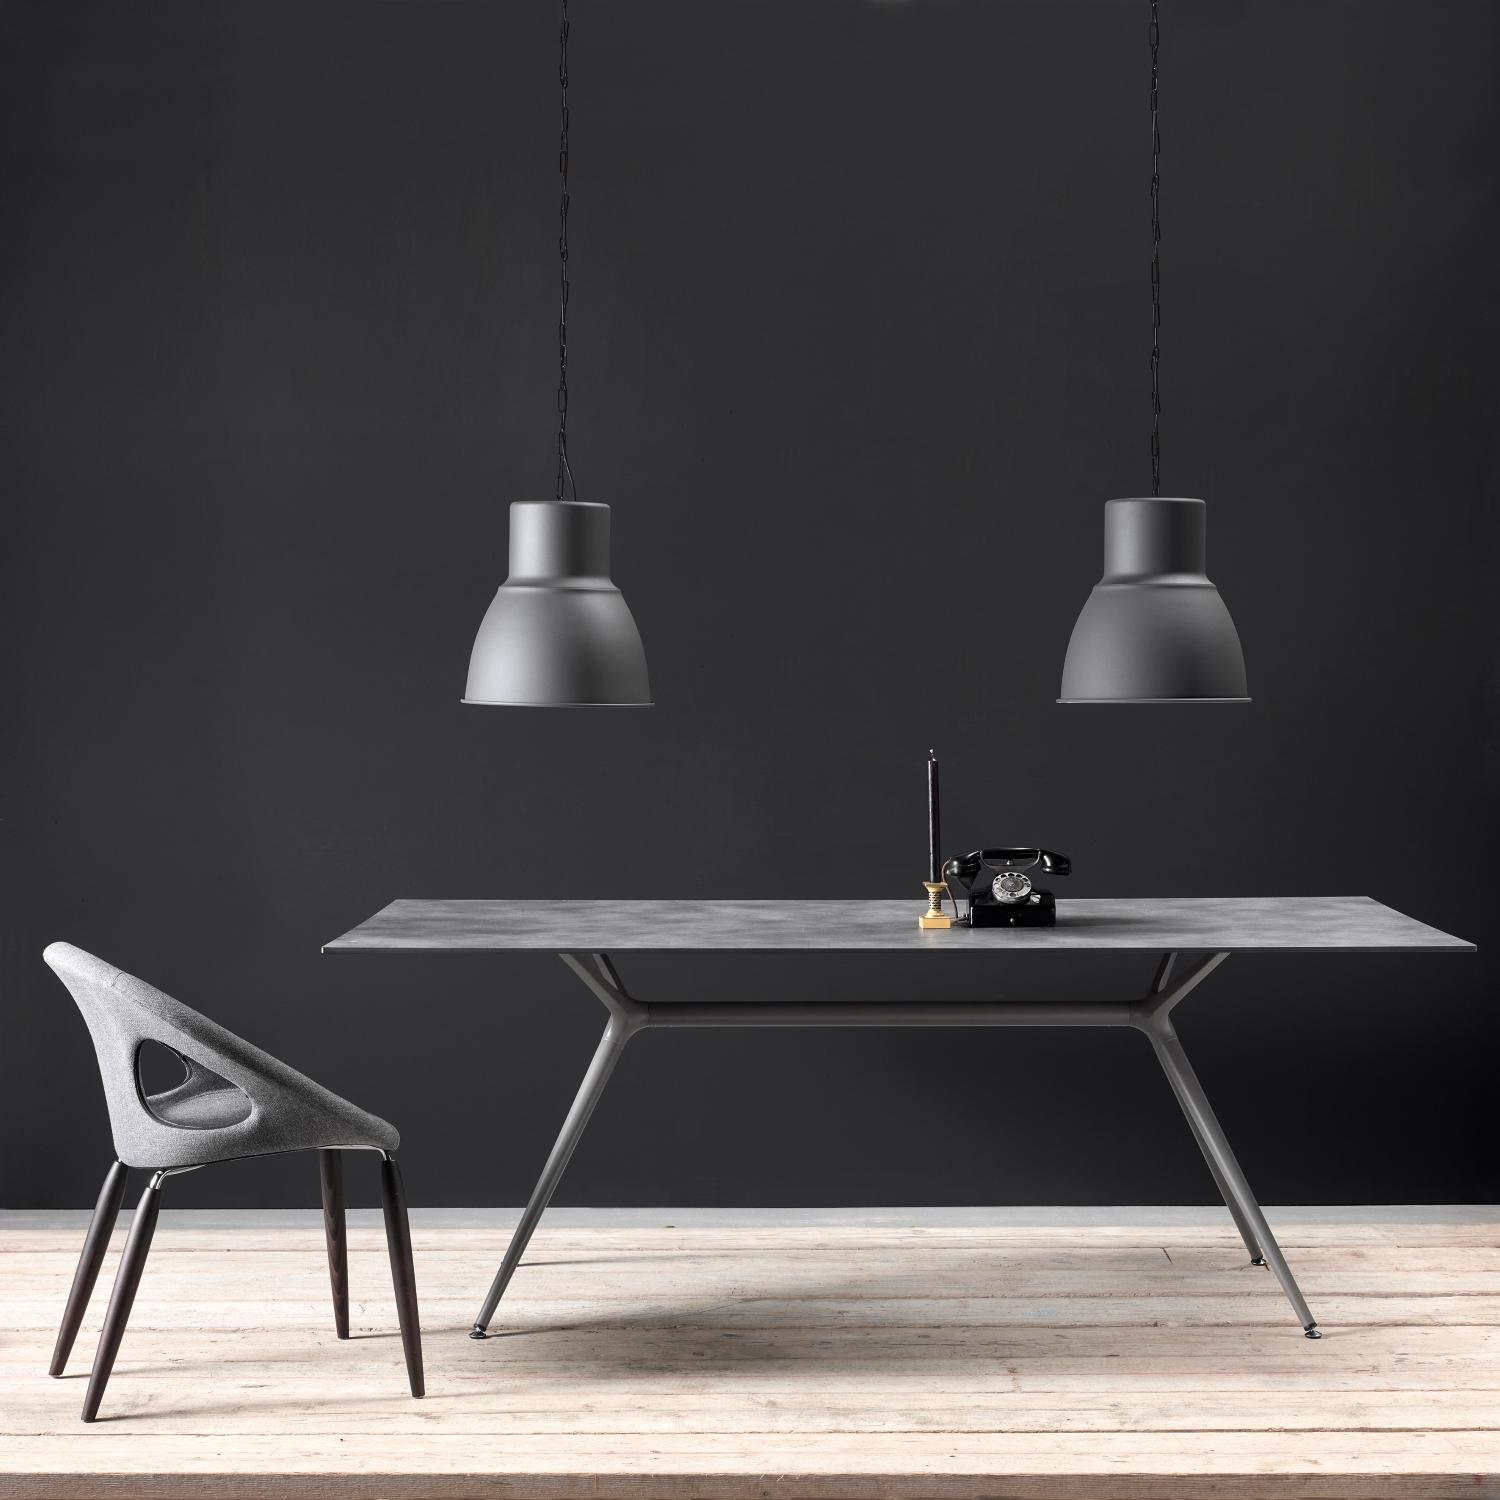 MILAN table. Table top-ceramic plate LAMINAM® glossy Pietra Grey Lucidato. Base: aluminum, steel-Piombo finish.